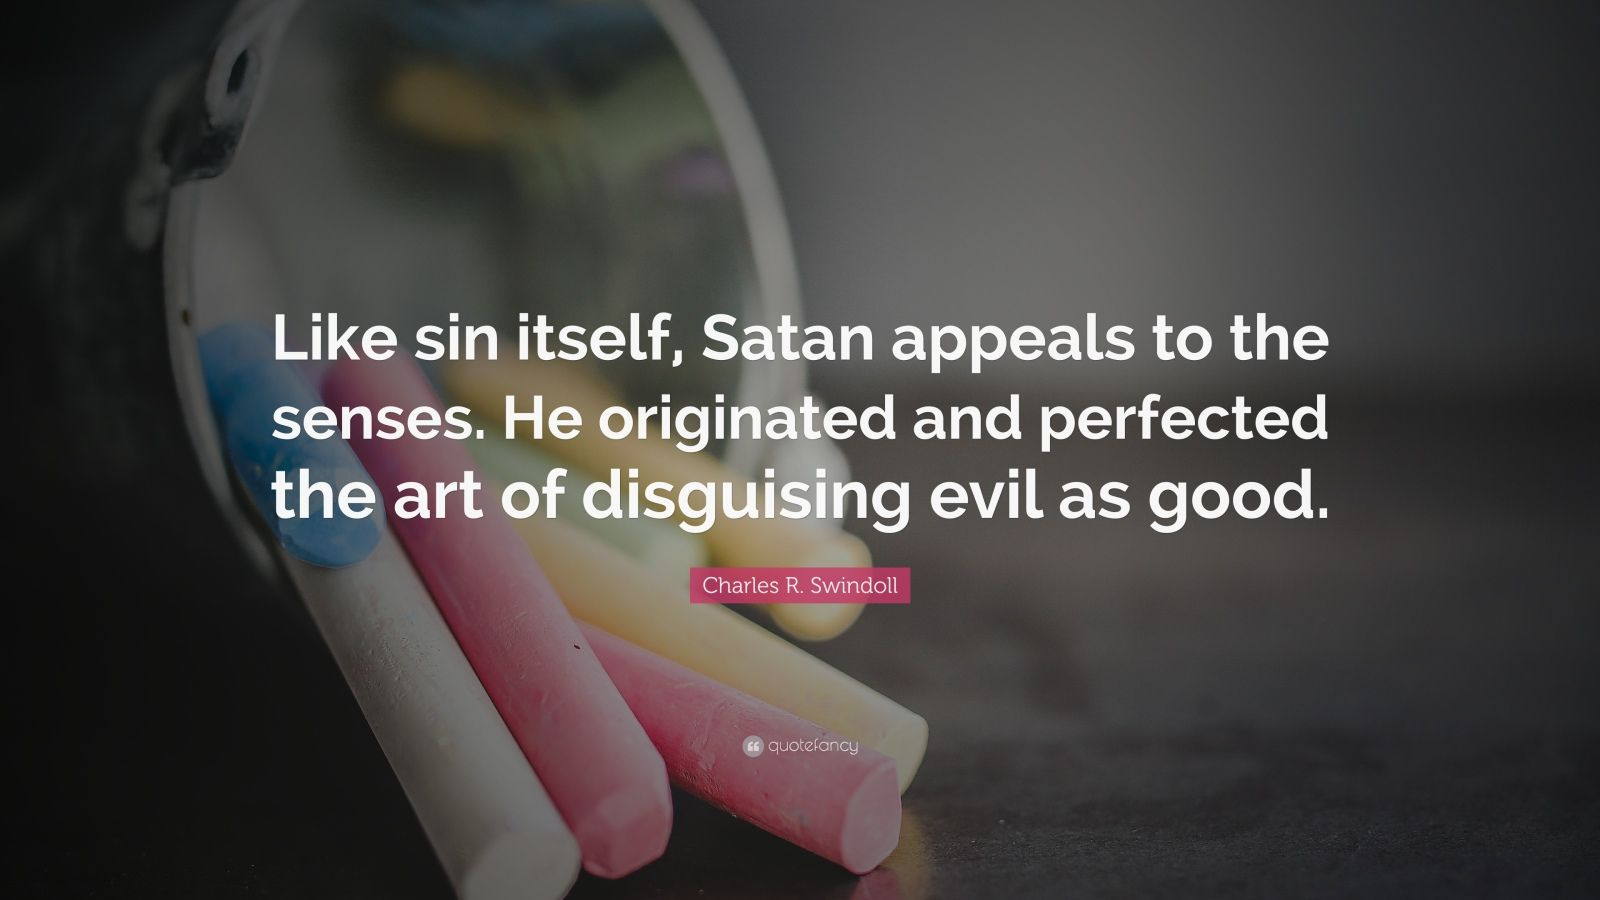 """Charles R. Swindoll Quote: """"Like sin itself, Satan appeals to the senses. He originated and perfected the art of disguising evil as good."""""""